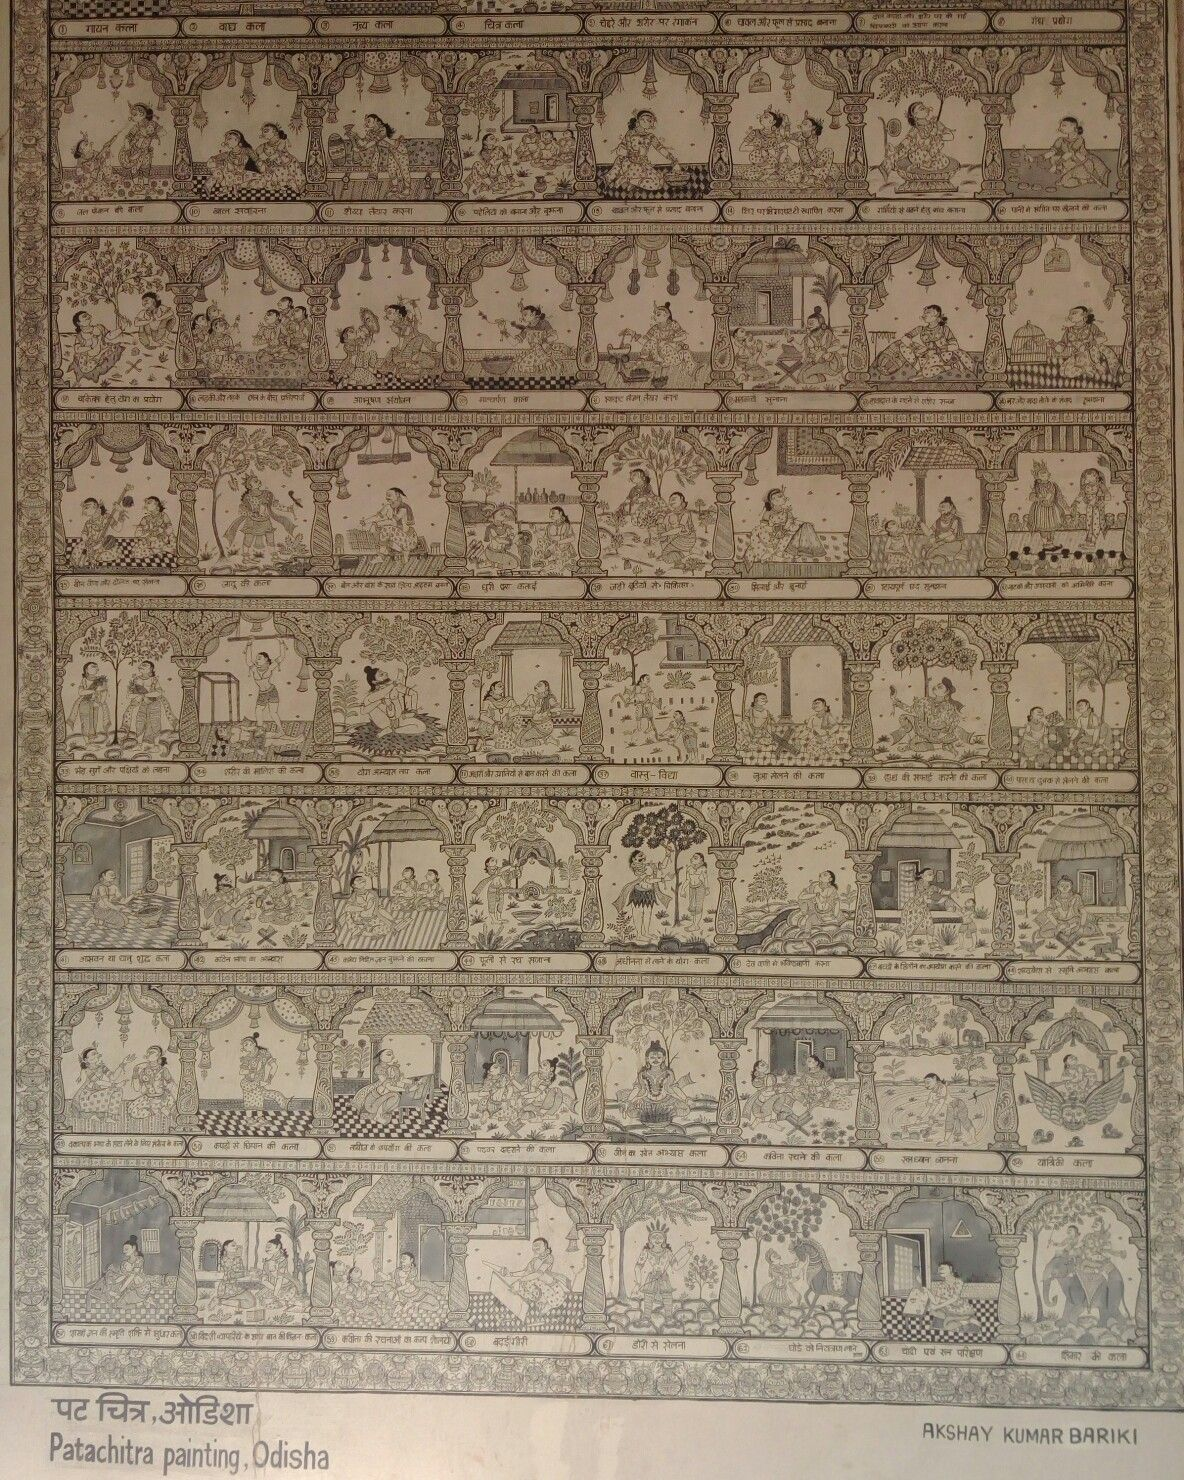 Traditional indian form of painting Pattachitra on wall Wall art